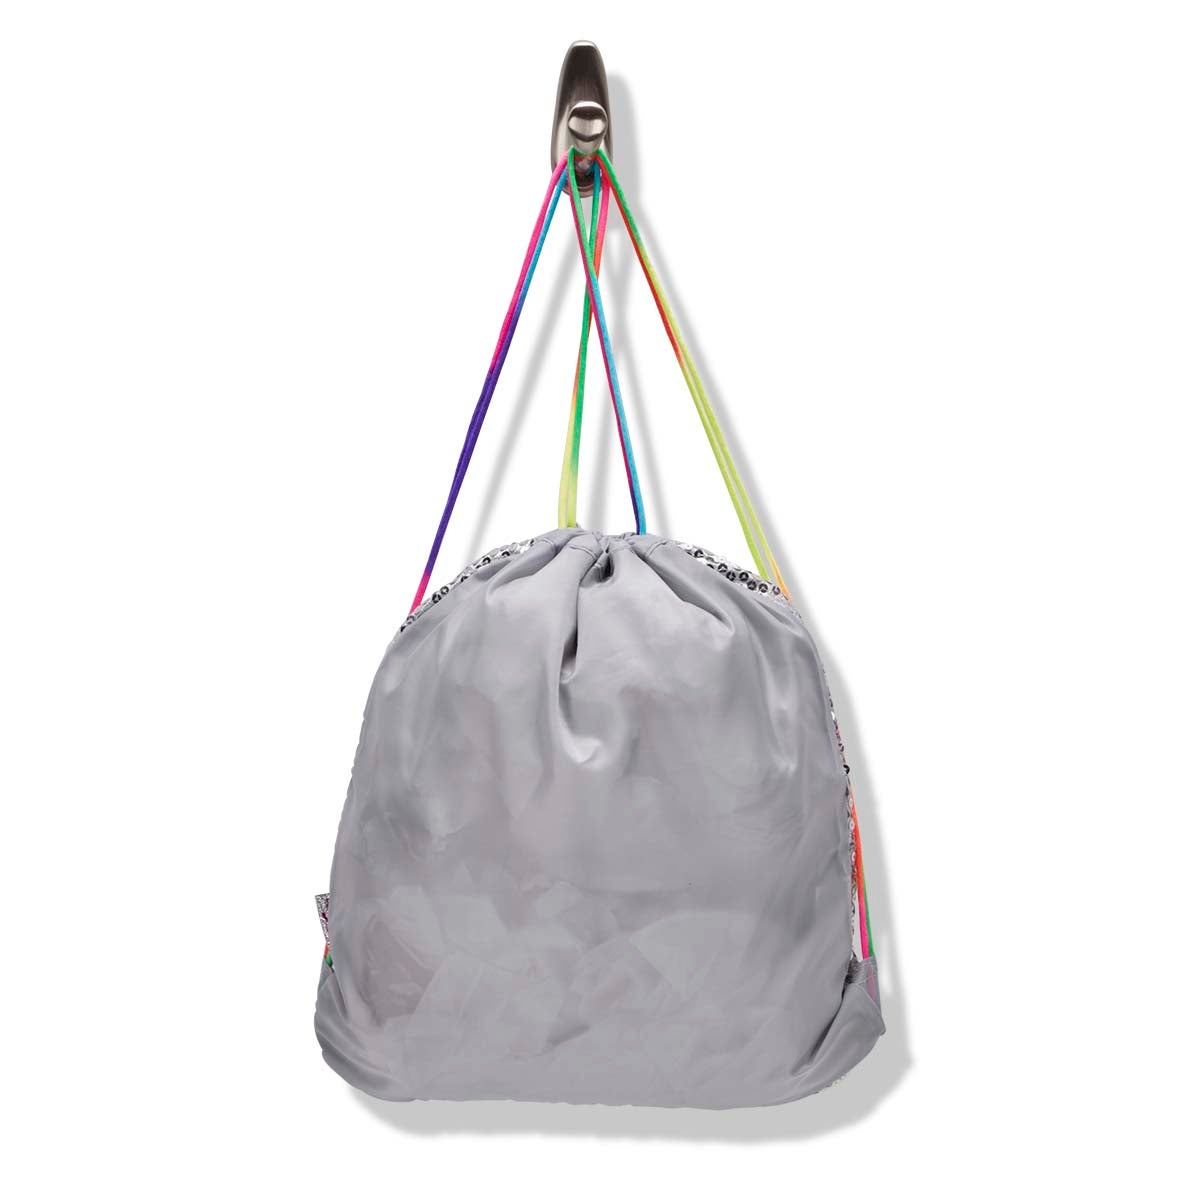 Grls TwinkleToes slv drawstring backpack